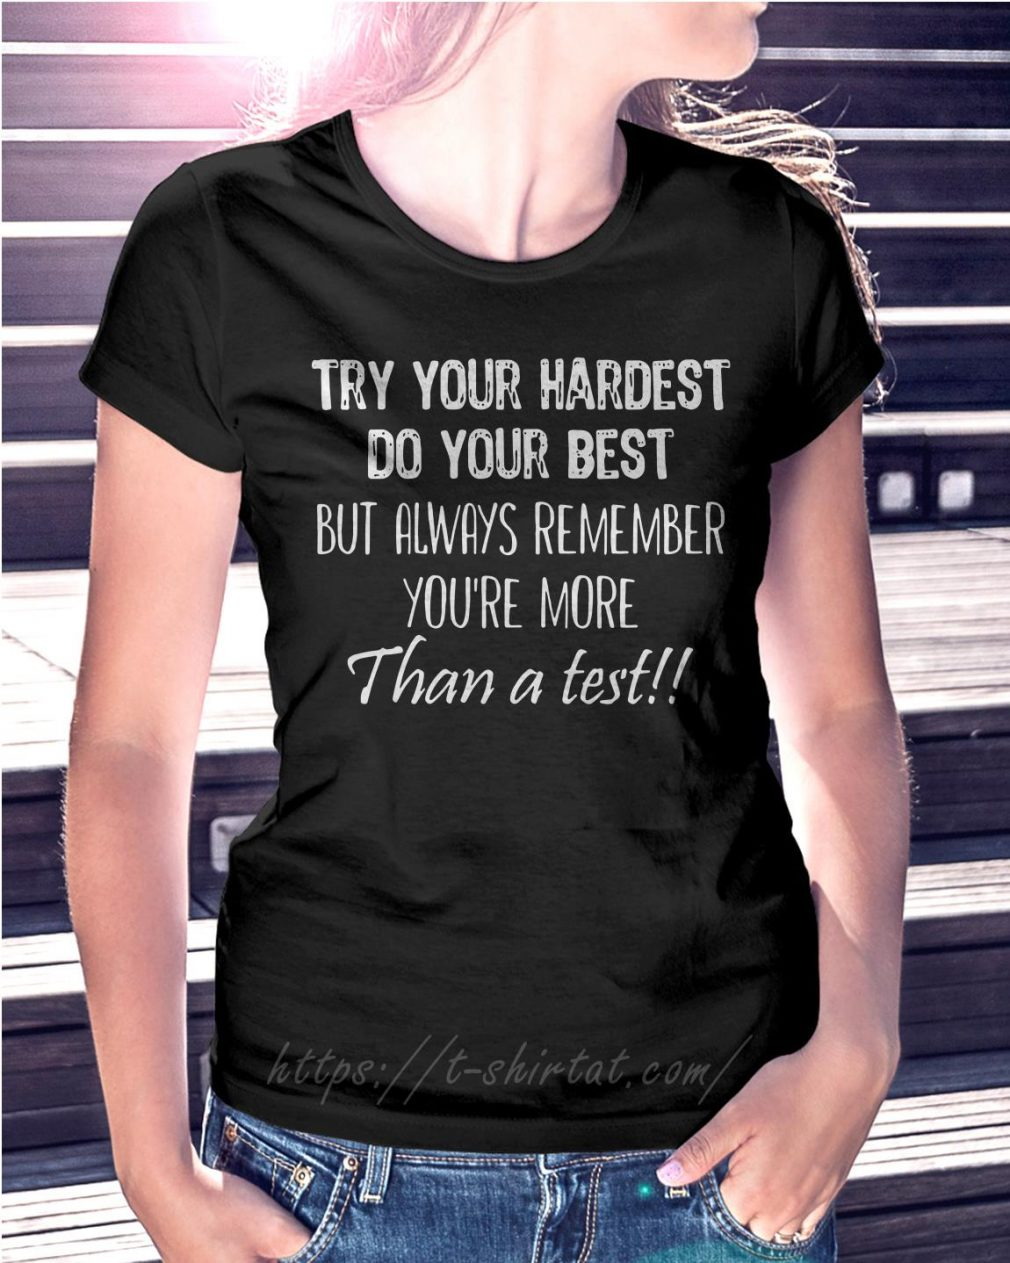 Try your hardest do your best but always remember you're more than a test T-shirt